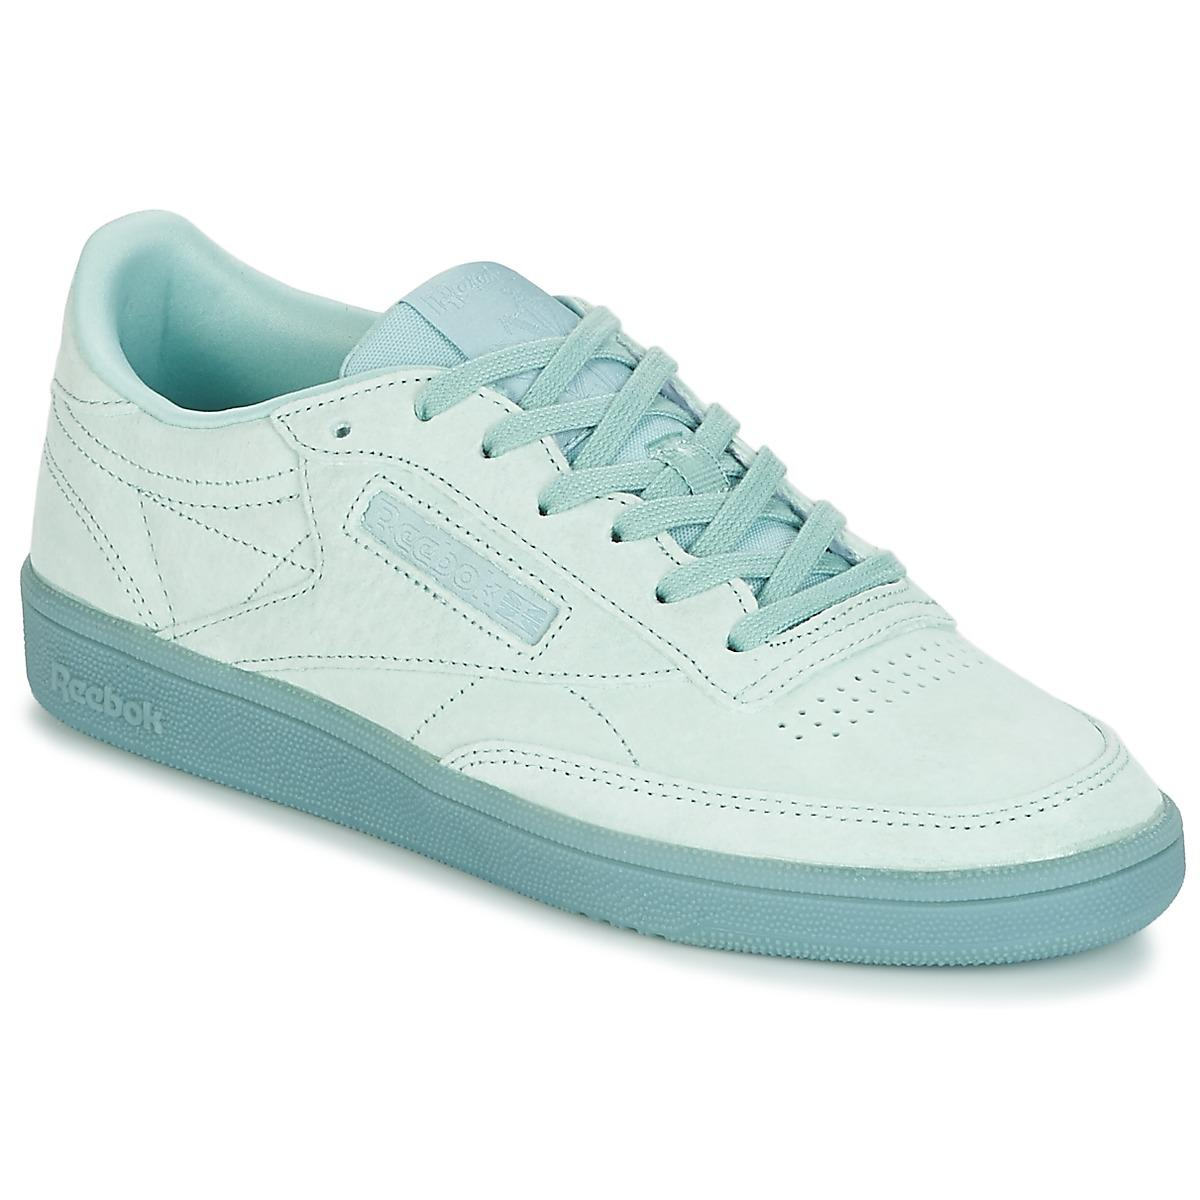 fd75c38c071e Reebok Club C 85 Lace Women s Shoes (trainers) In Green in Green - Lyst